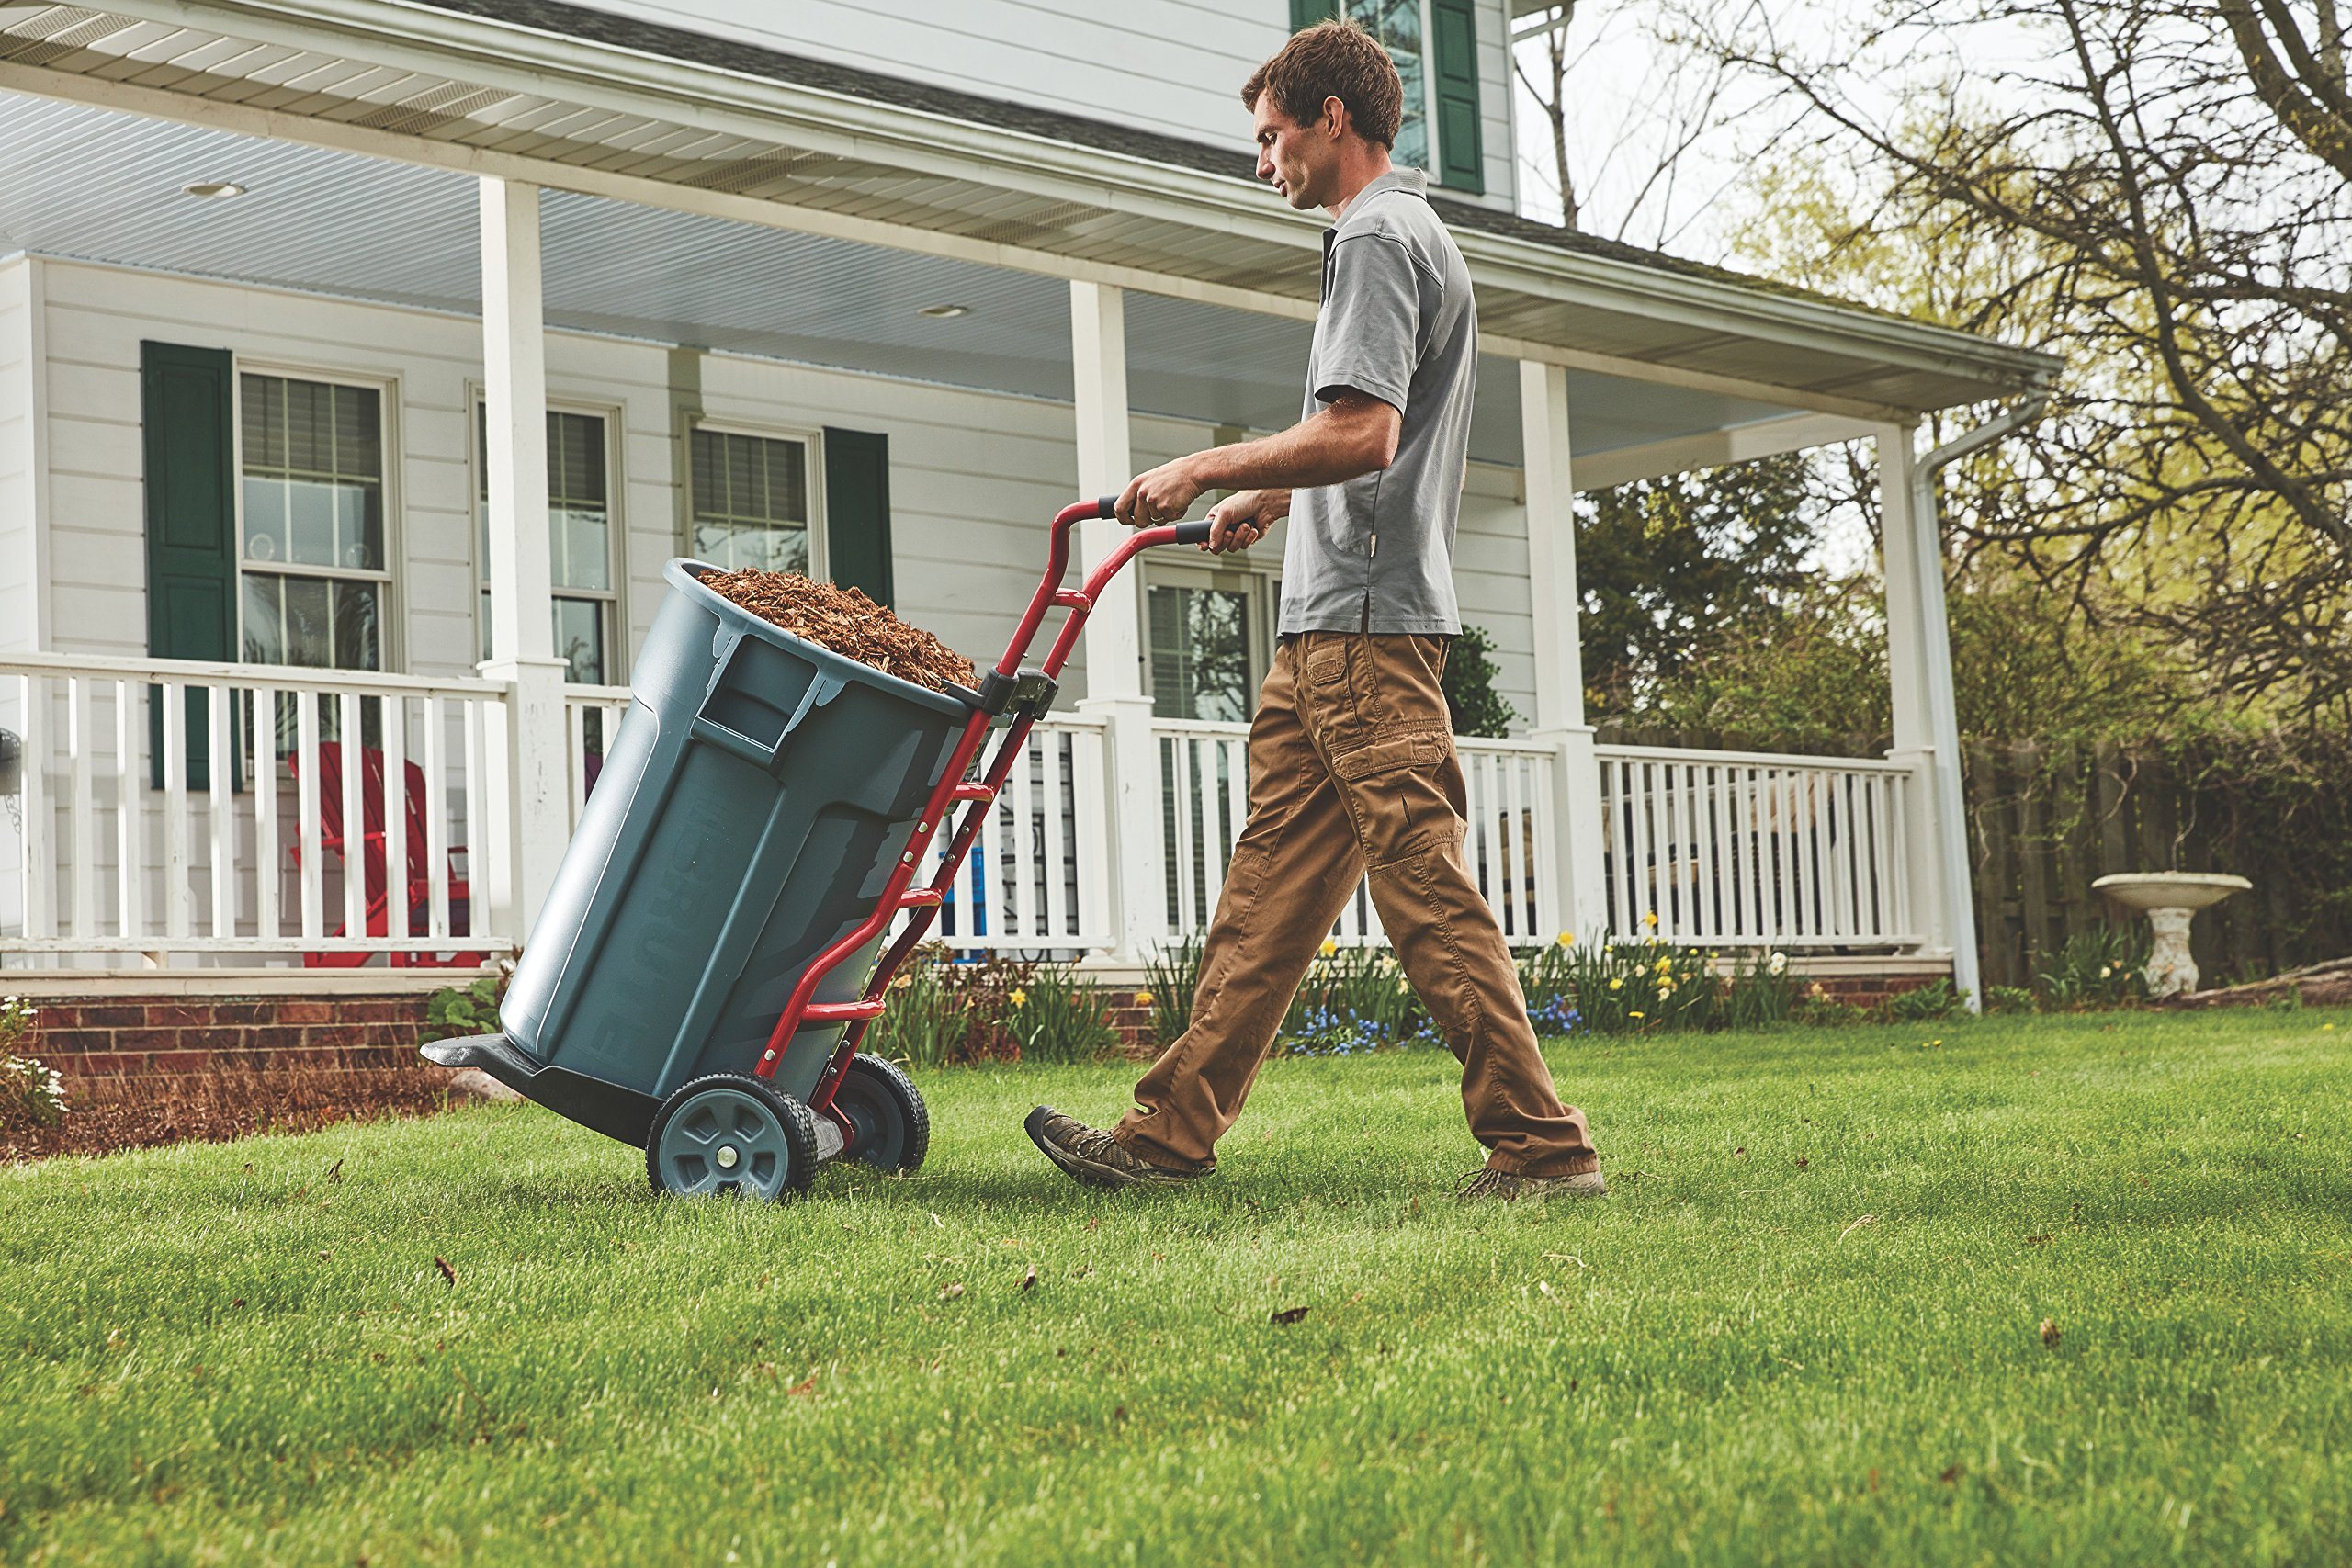 Rubbermaid Commercial Products Brute Construction and Landscape Dolly (1997410) by Rubbermaid Commercial Products (Image #12)